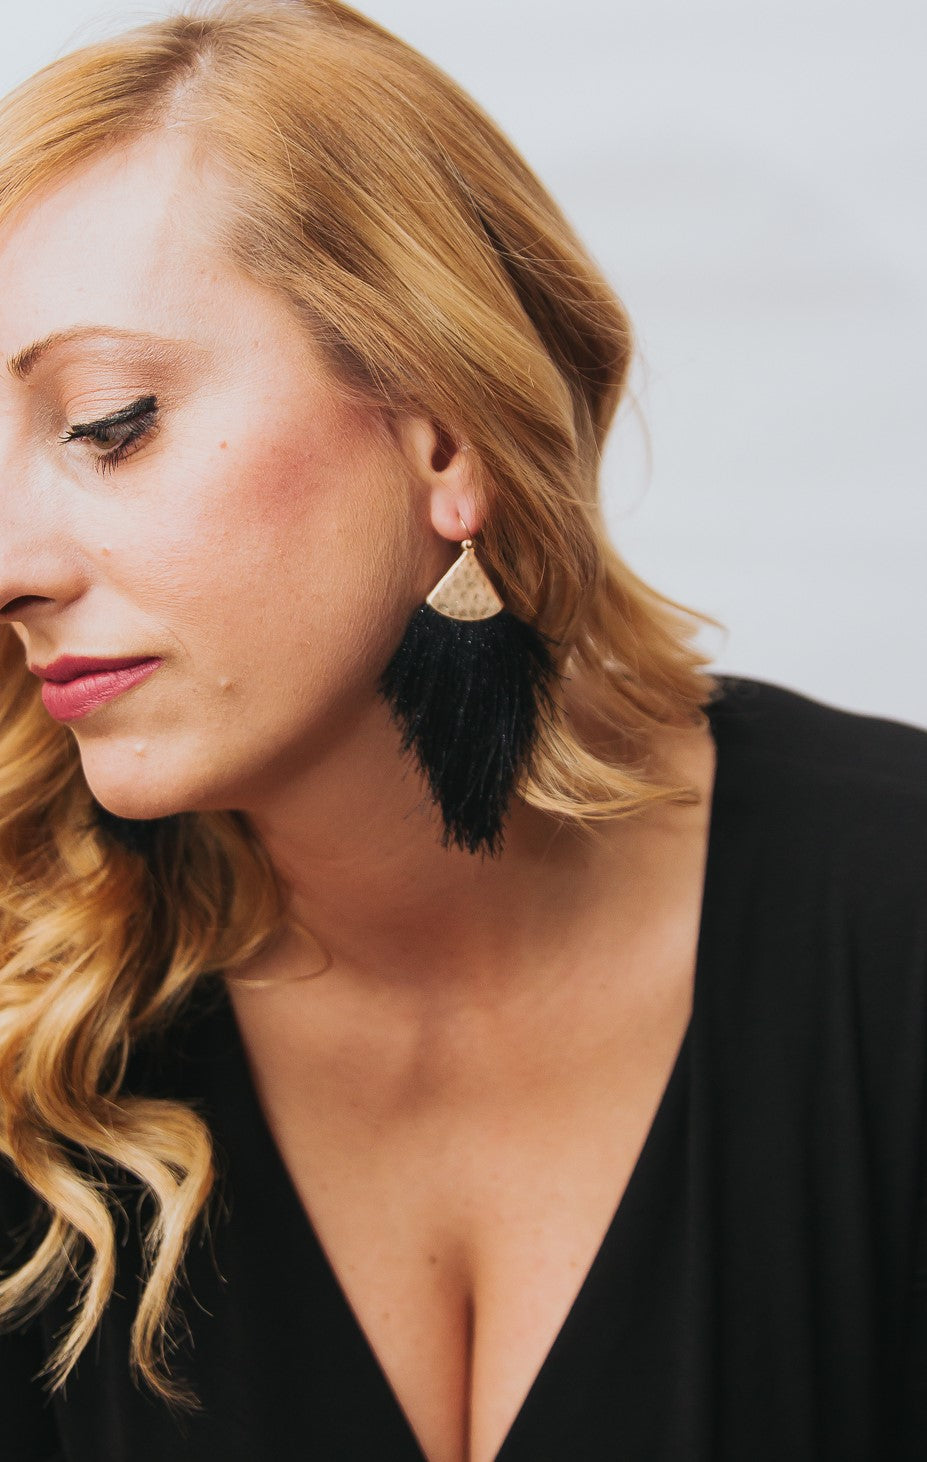 Isabella Tassel Earrings in Black and Ivory